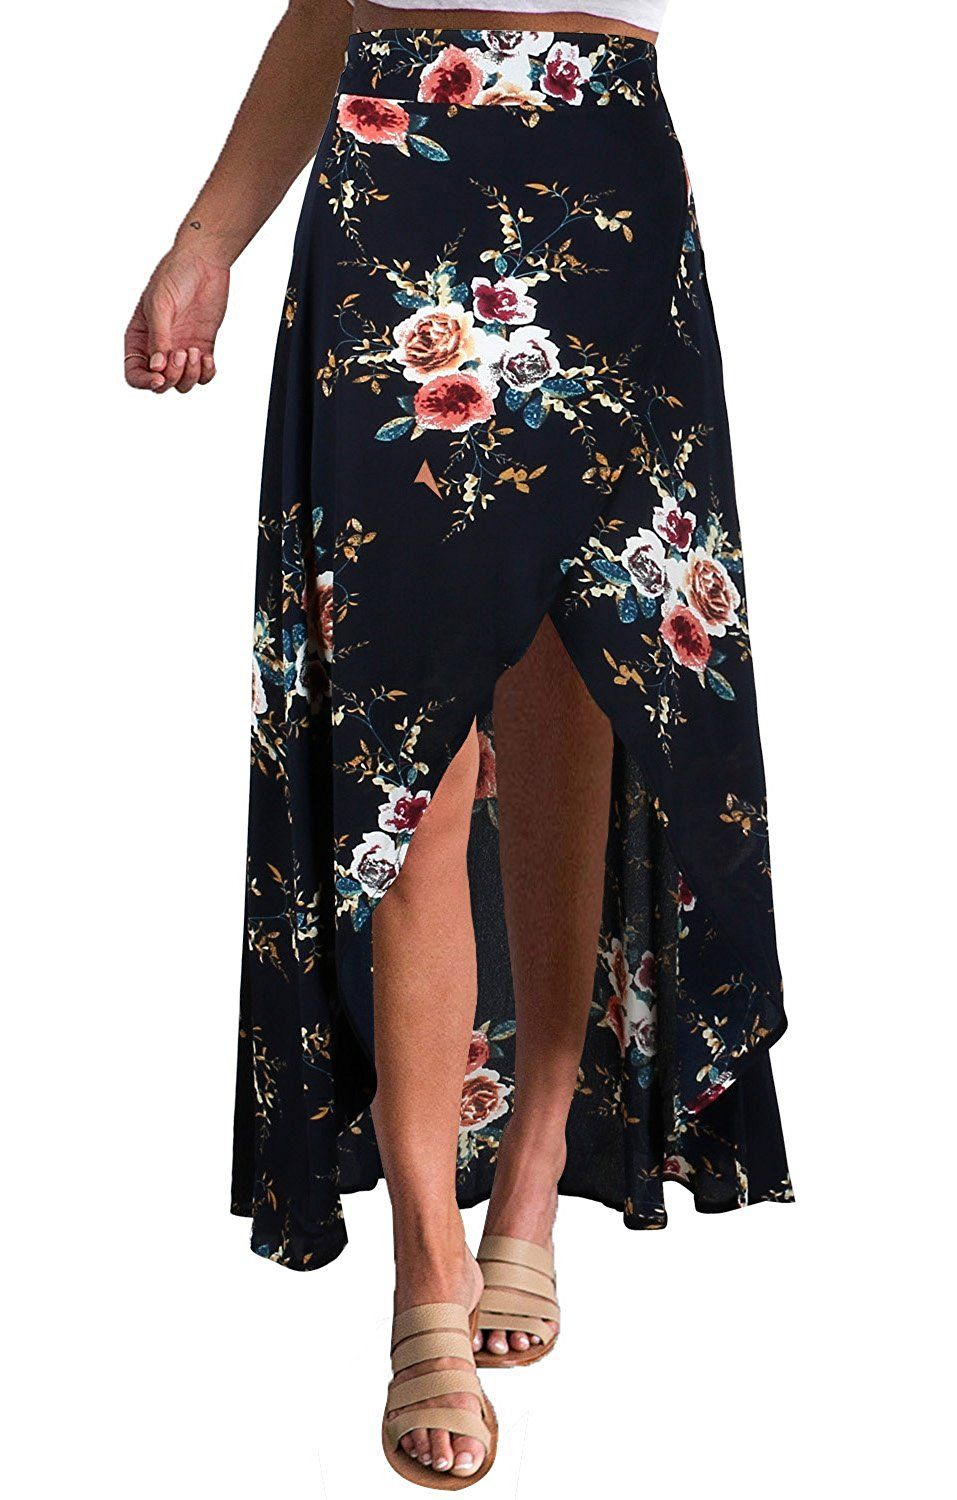 2ae1e10101 Yonala Womens Boho Floral Tie Up Waist Summer Beach Wrap Cover Up Maxi Skirt  at Amazon Women's Clothing store: